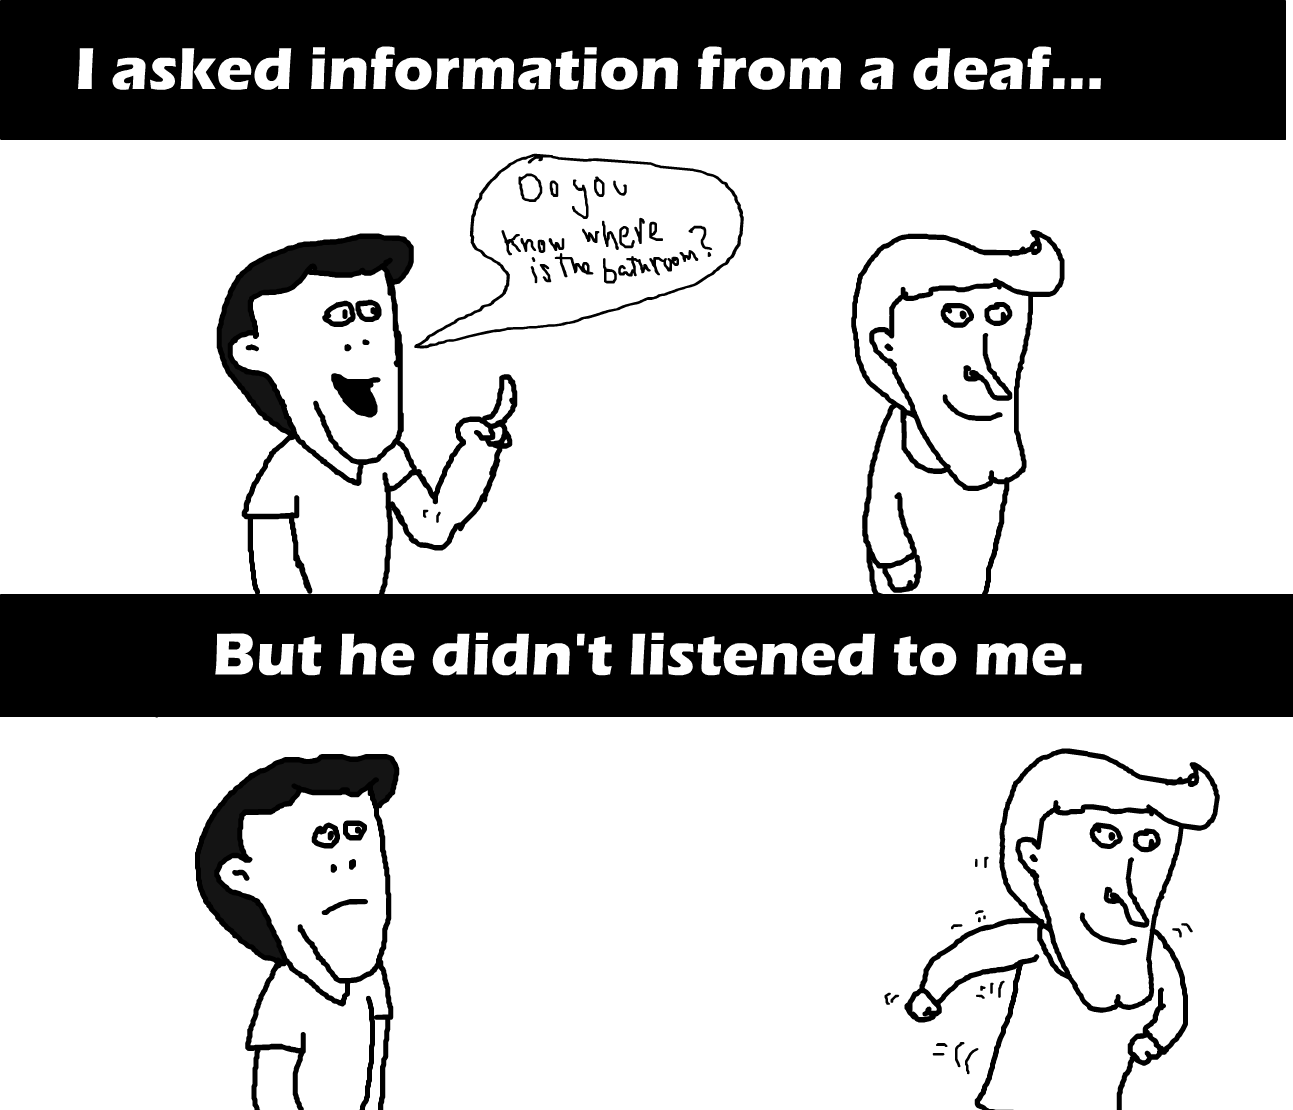 Deafs are means